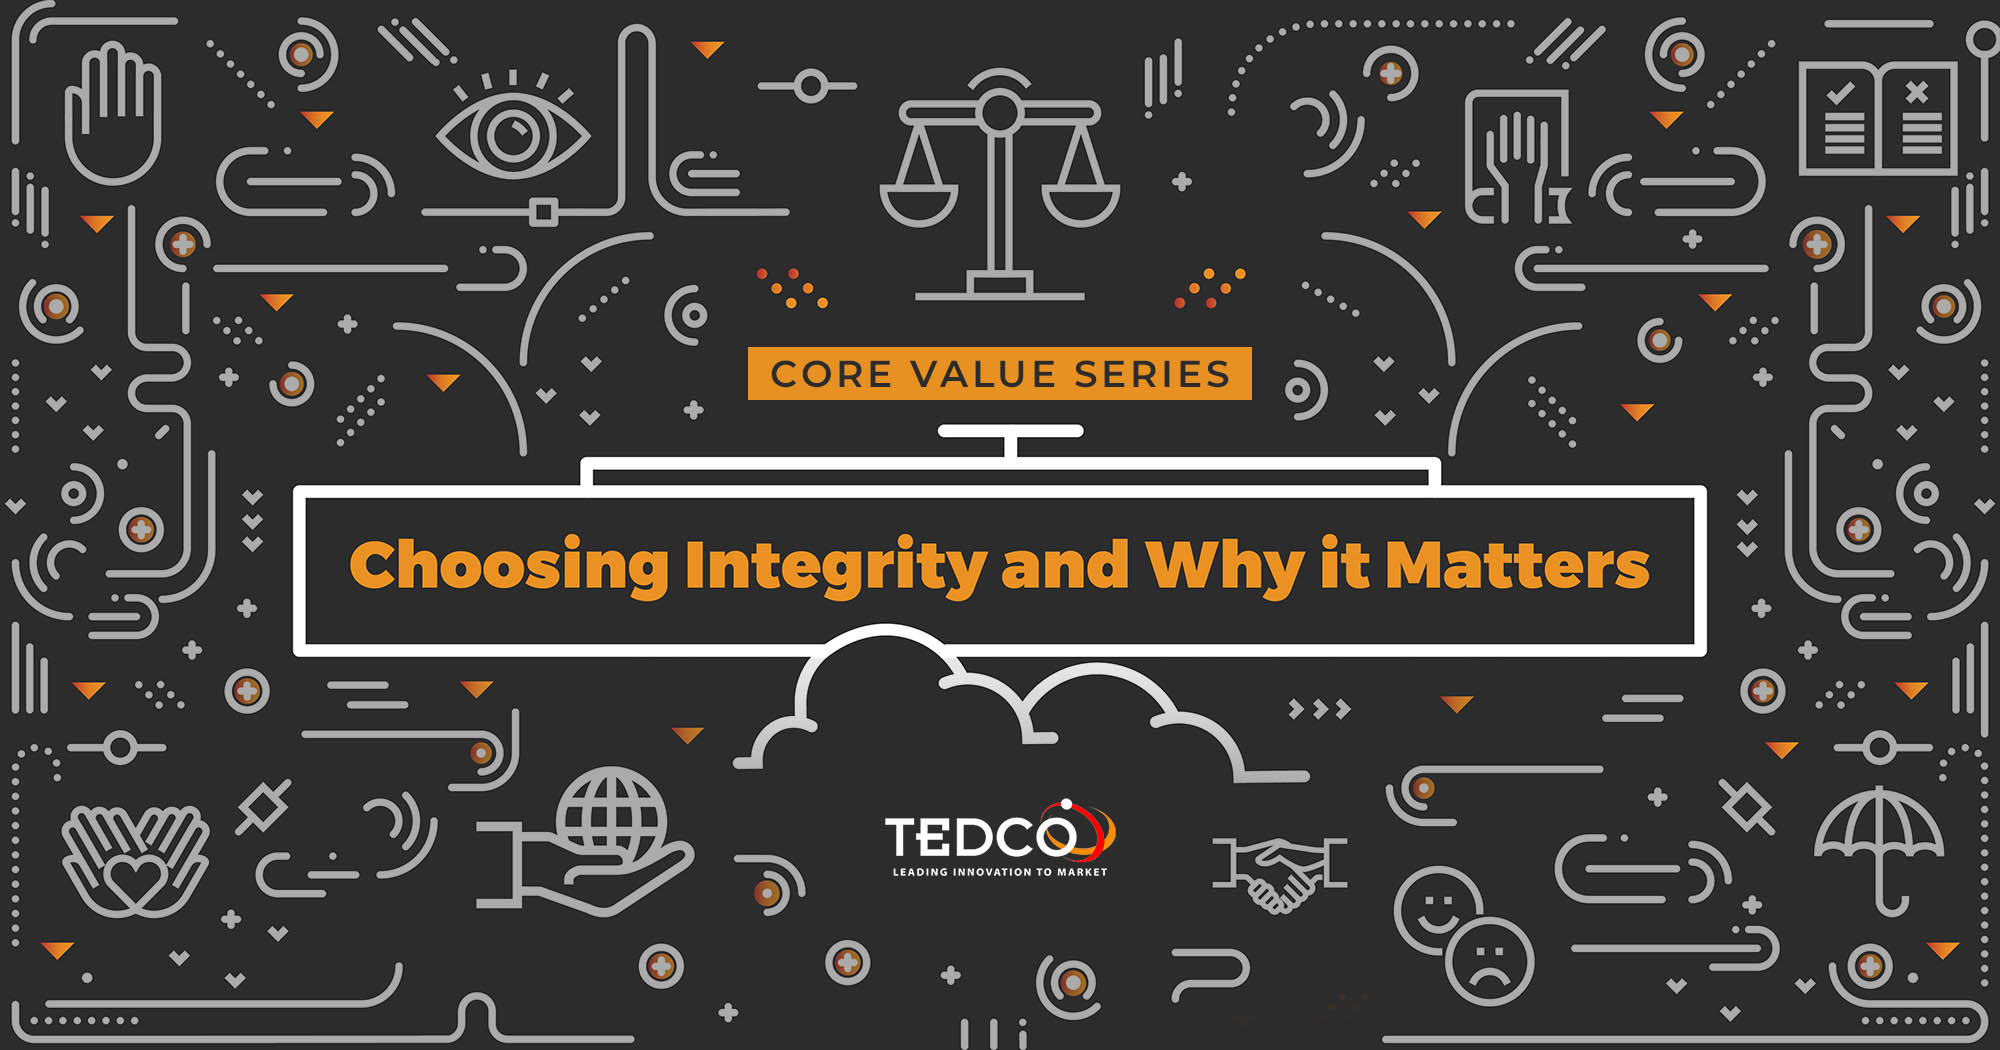 Choosing Integrity and Why it Matters